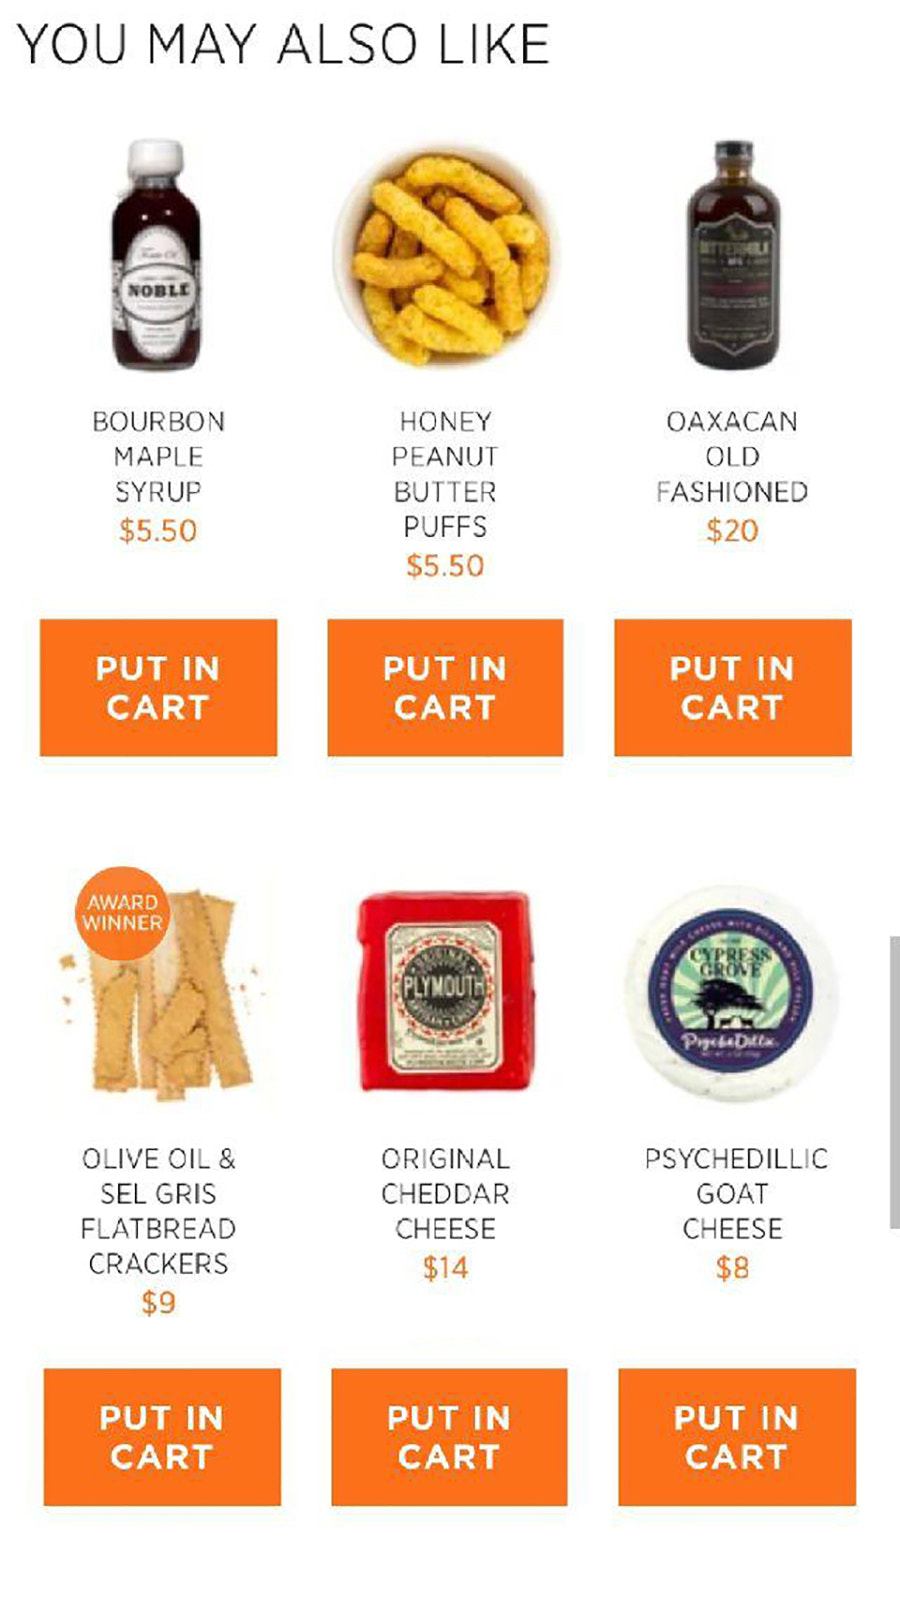 Related Products and you may also like carousel for your store